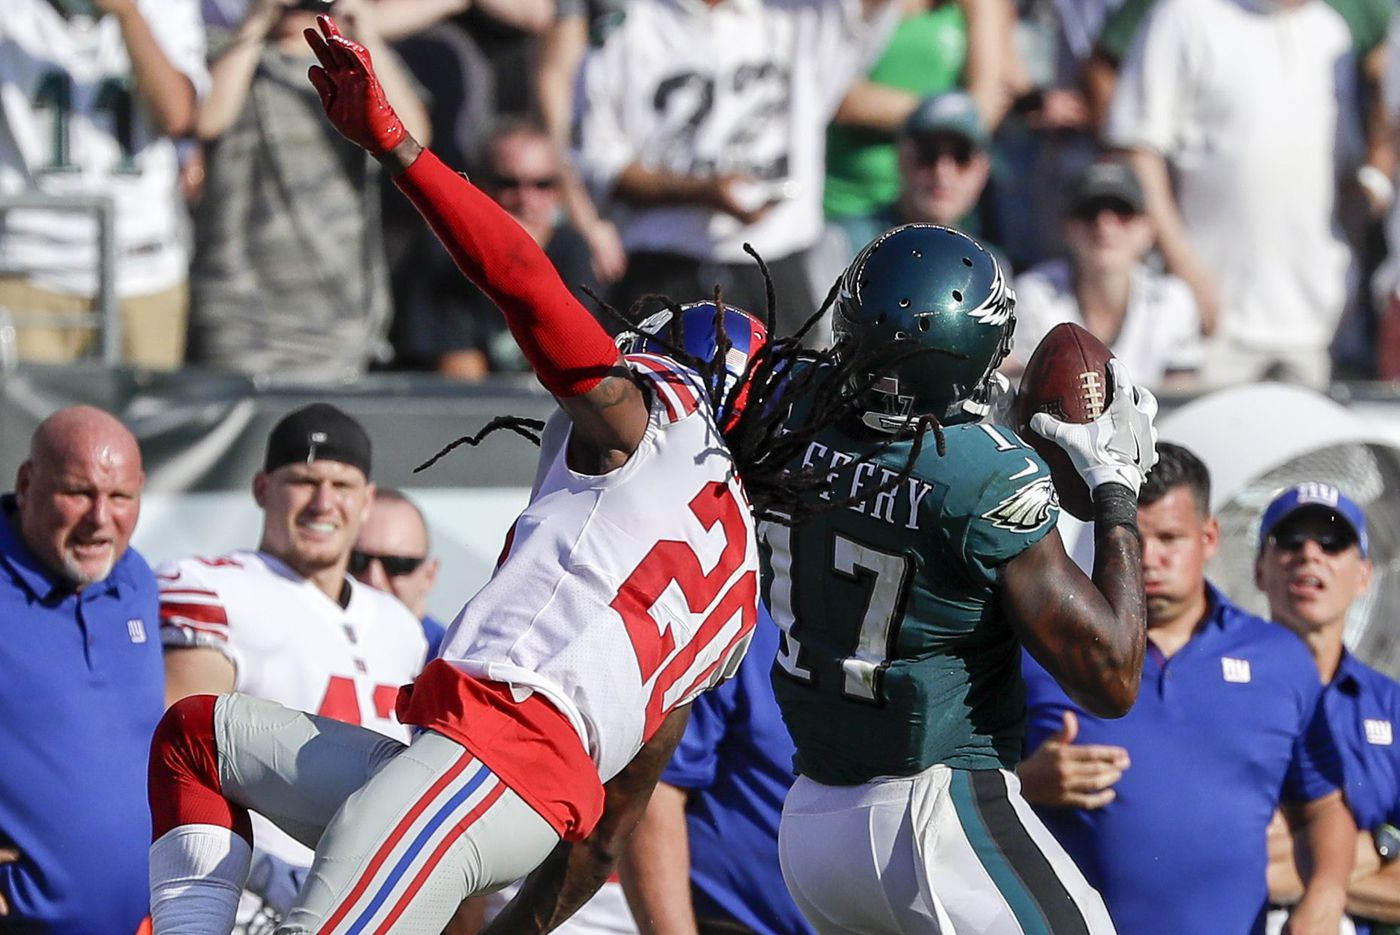 Report: Body found at Giants' CB Janoris Jenkins' house, police investigating as homicide